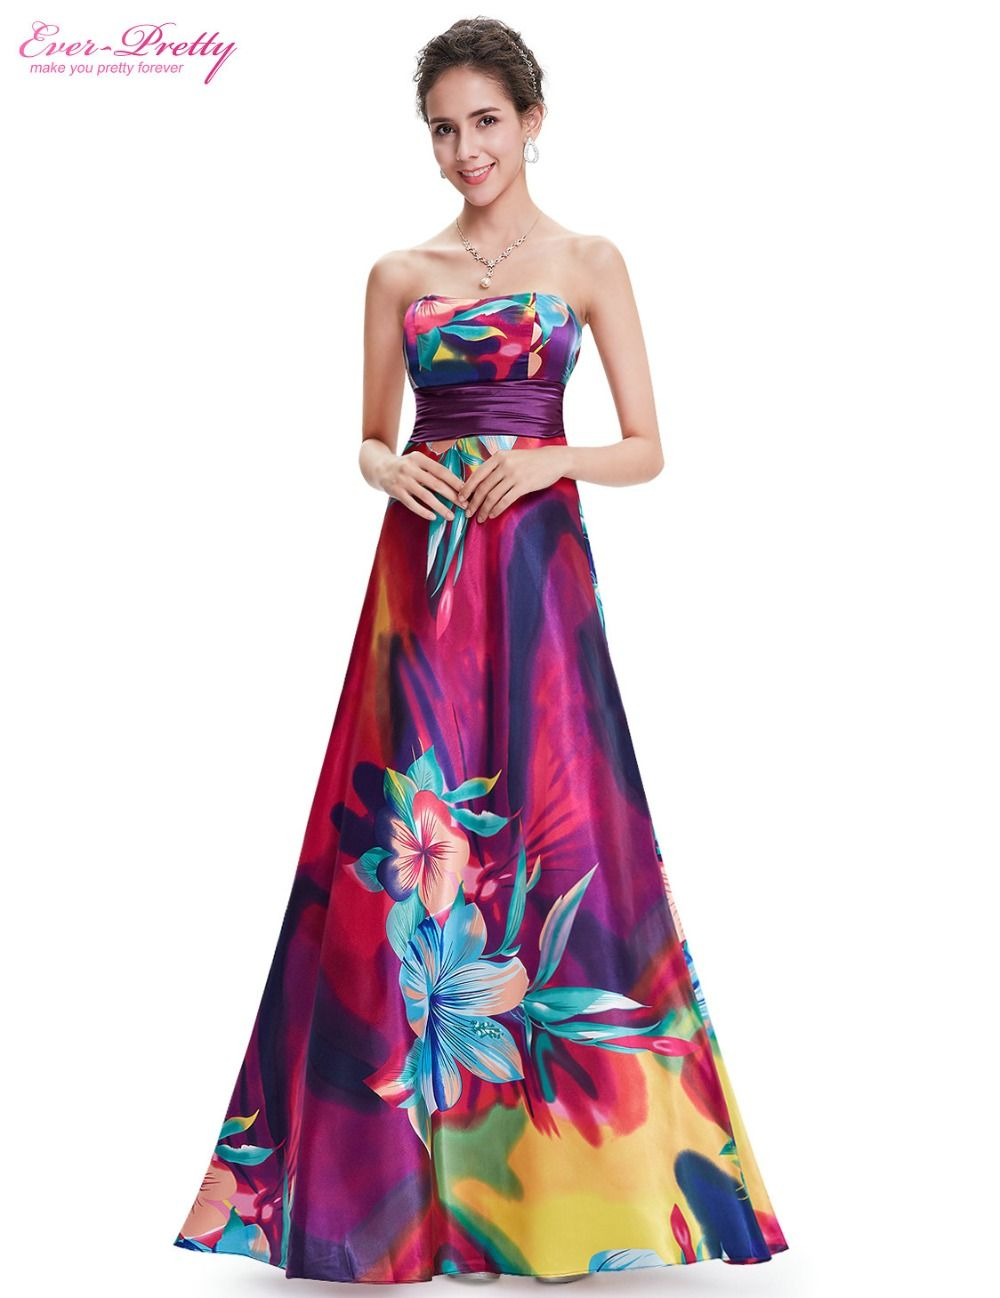 Gorgeous Colorful Strapless Long Evening Dress Padded Enough For No Bra Option Elastic Band